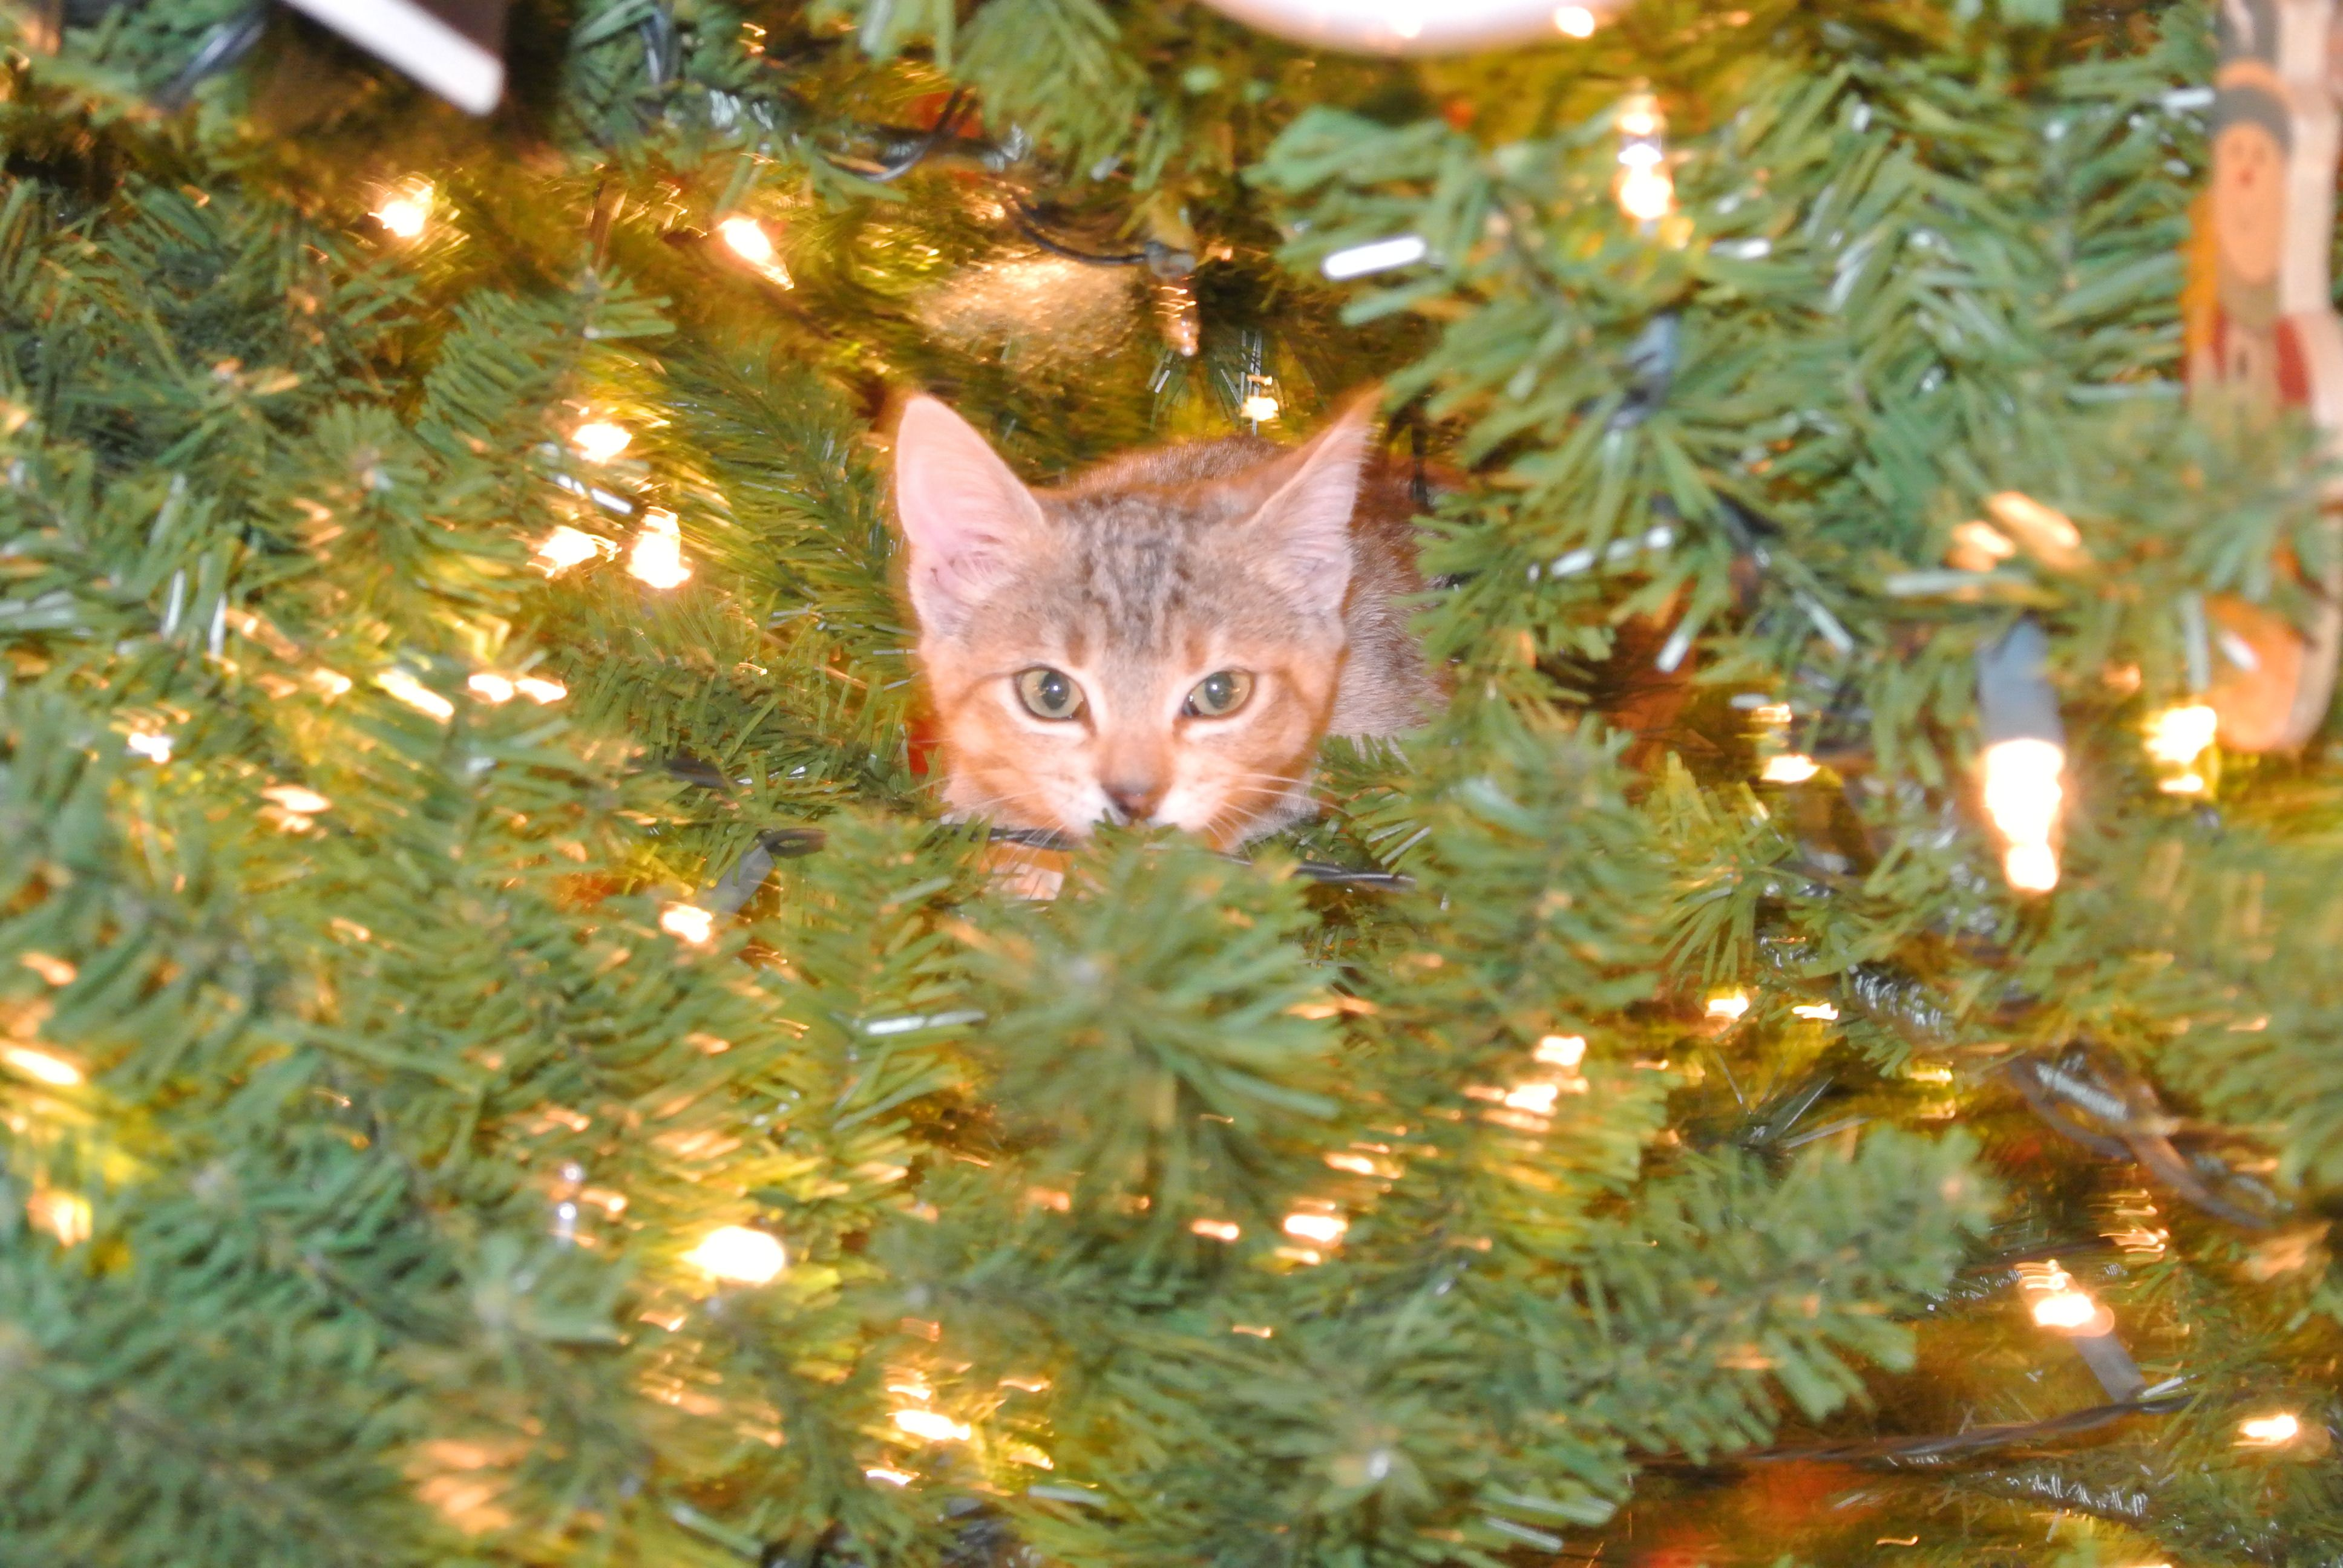 Ries enjoying the Christmas tree. alyssa is too lucky i got her ries